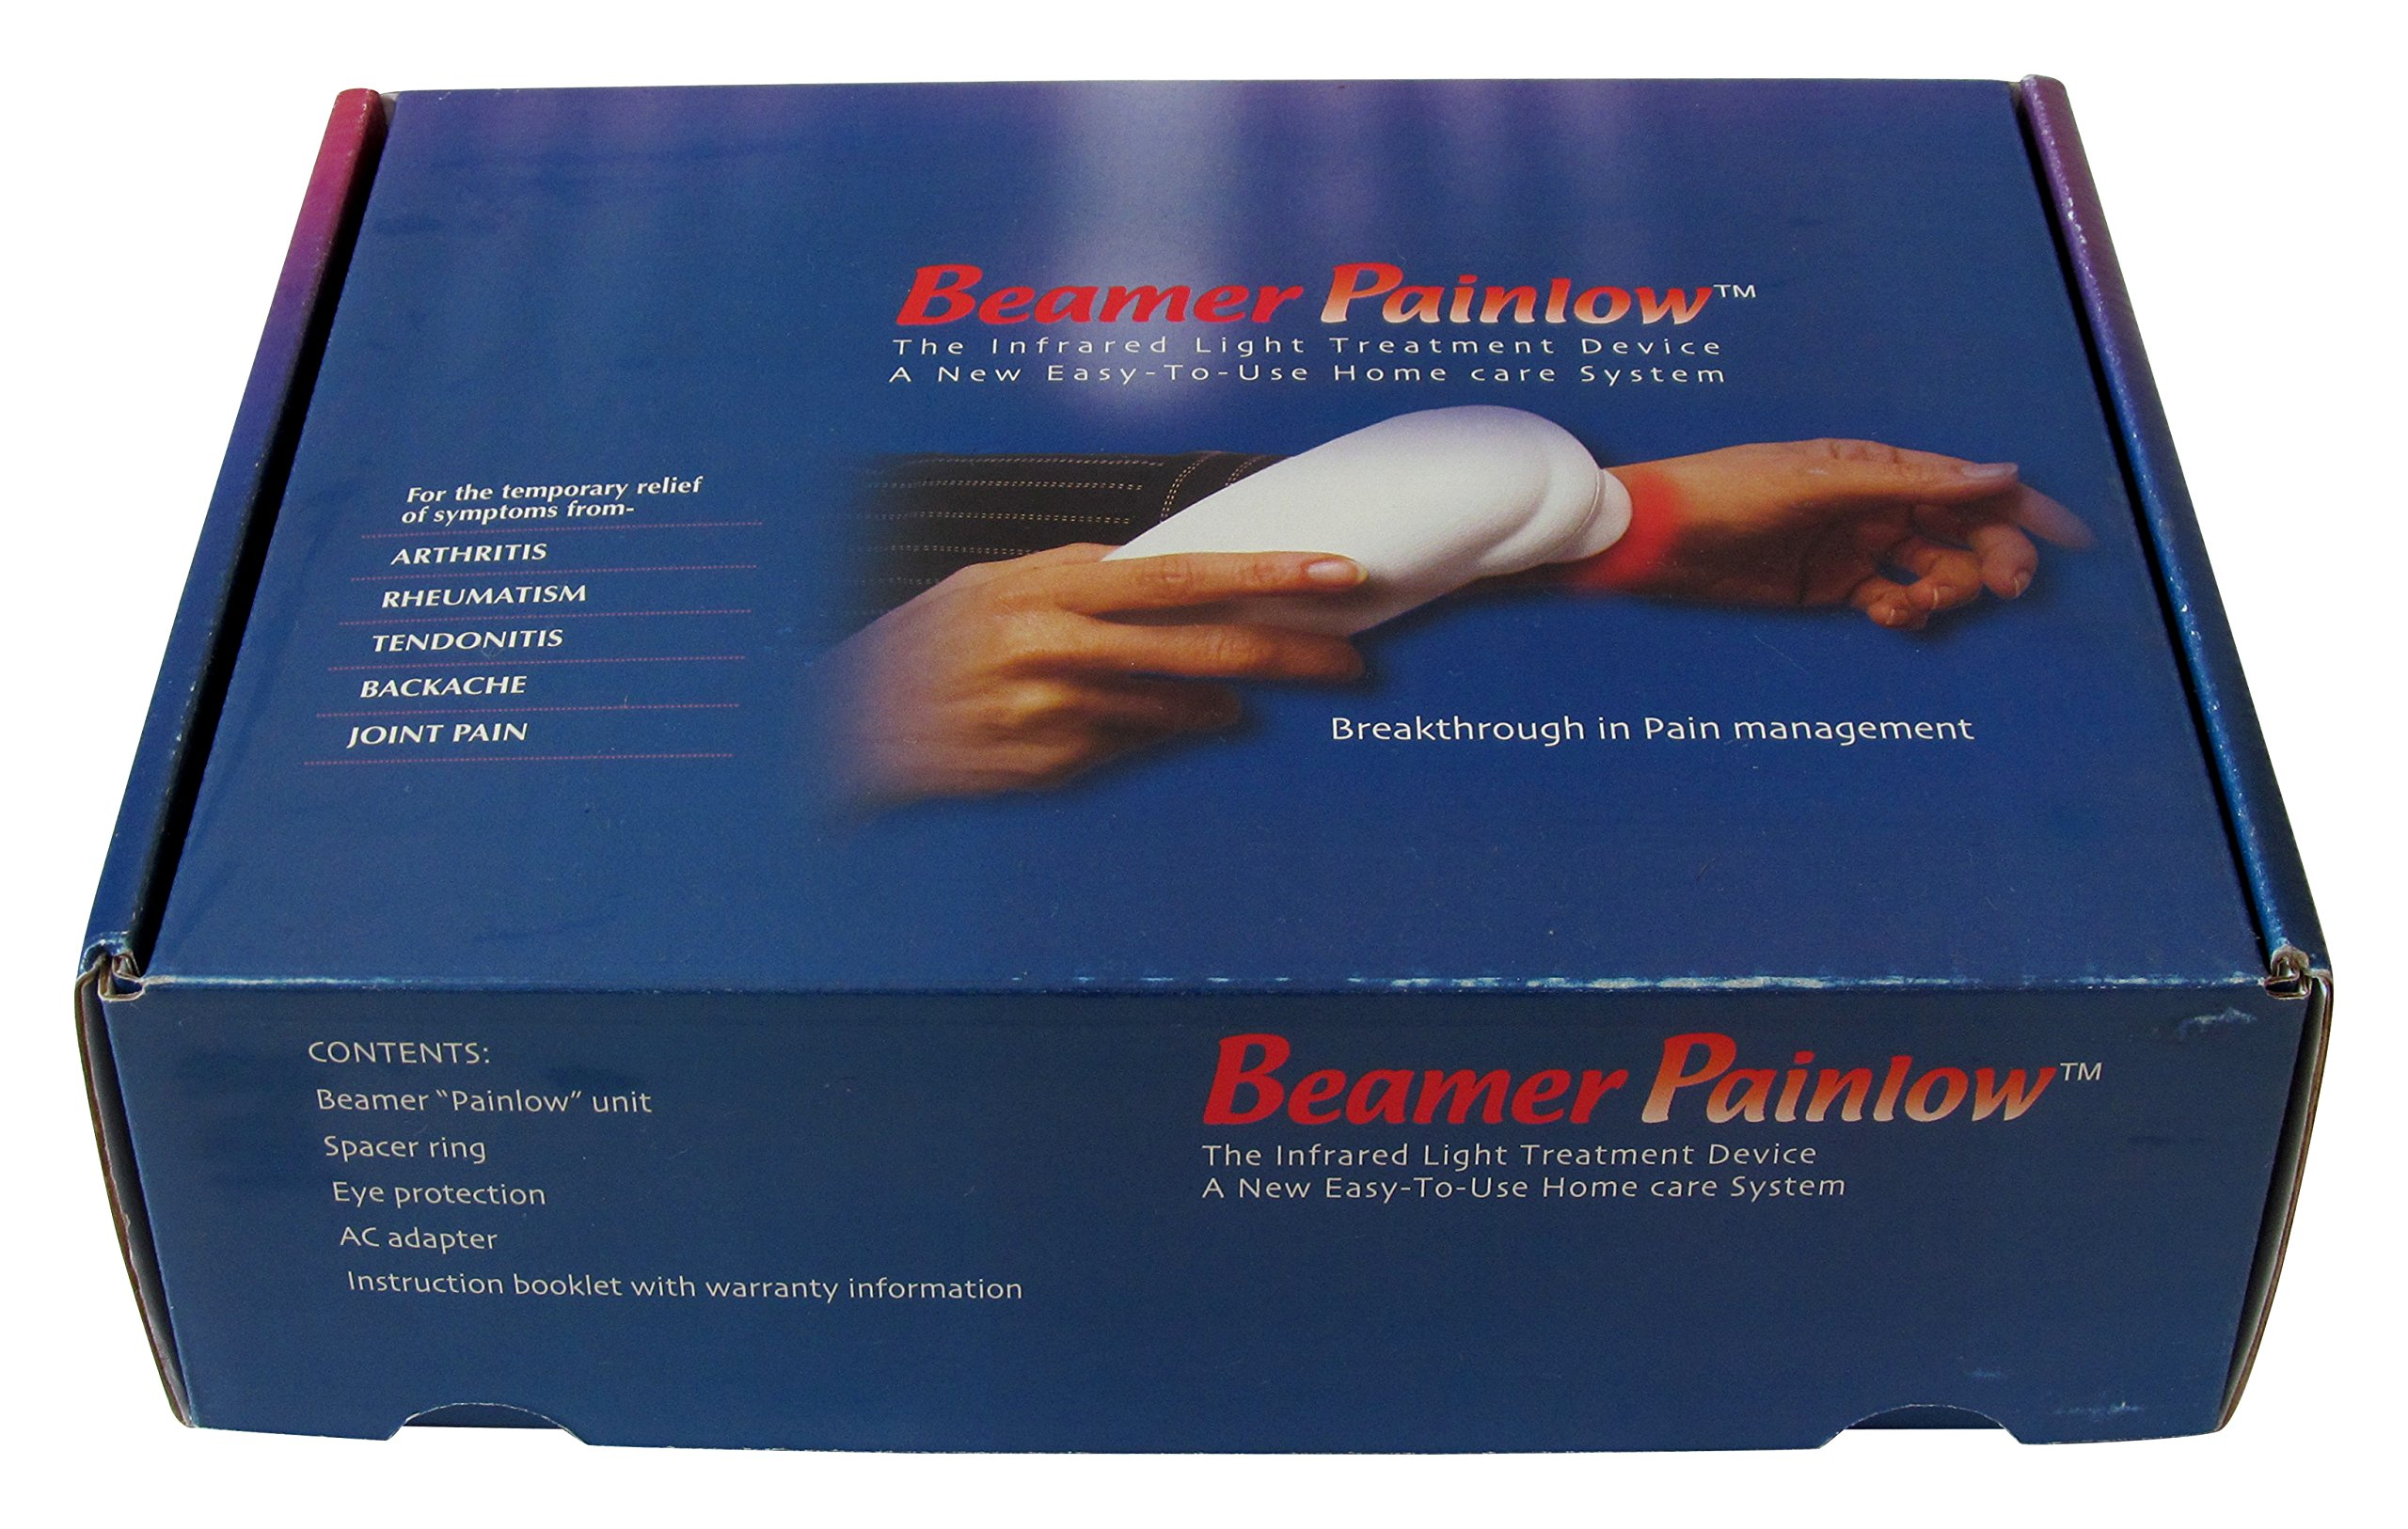 Beamer Painlow Infrared Treatment Rheumatic Pain Relief Light Therapy Chosen by sufferers of Knee, Back, Shoulder, Foot & Neck Pain, Arthritis, Neuropathy FDA Cleared.